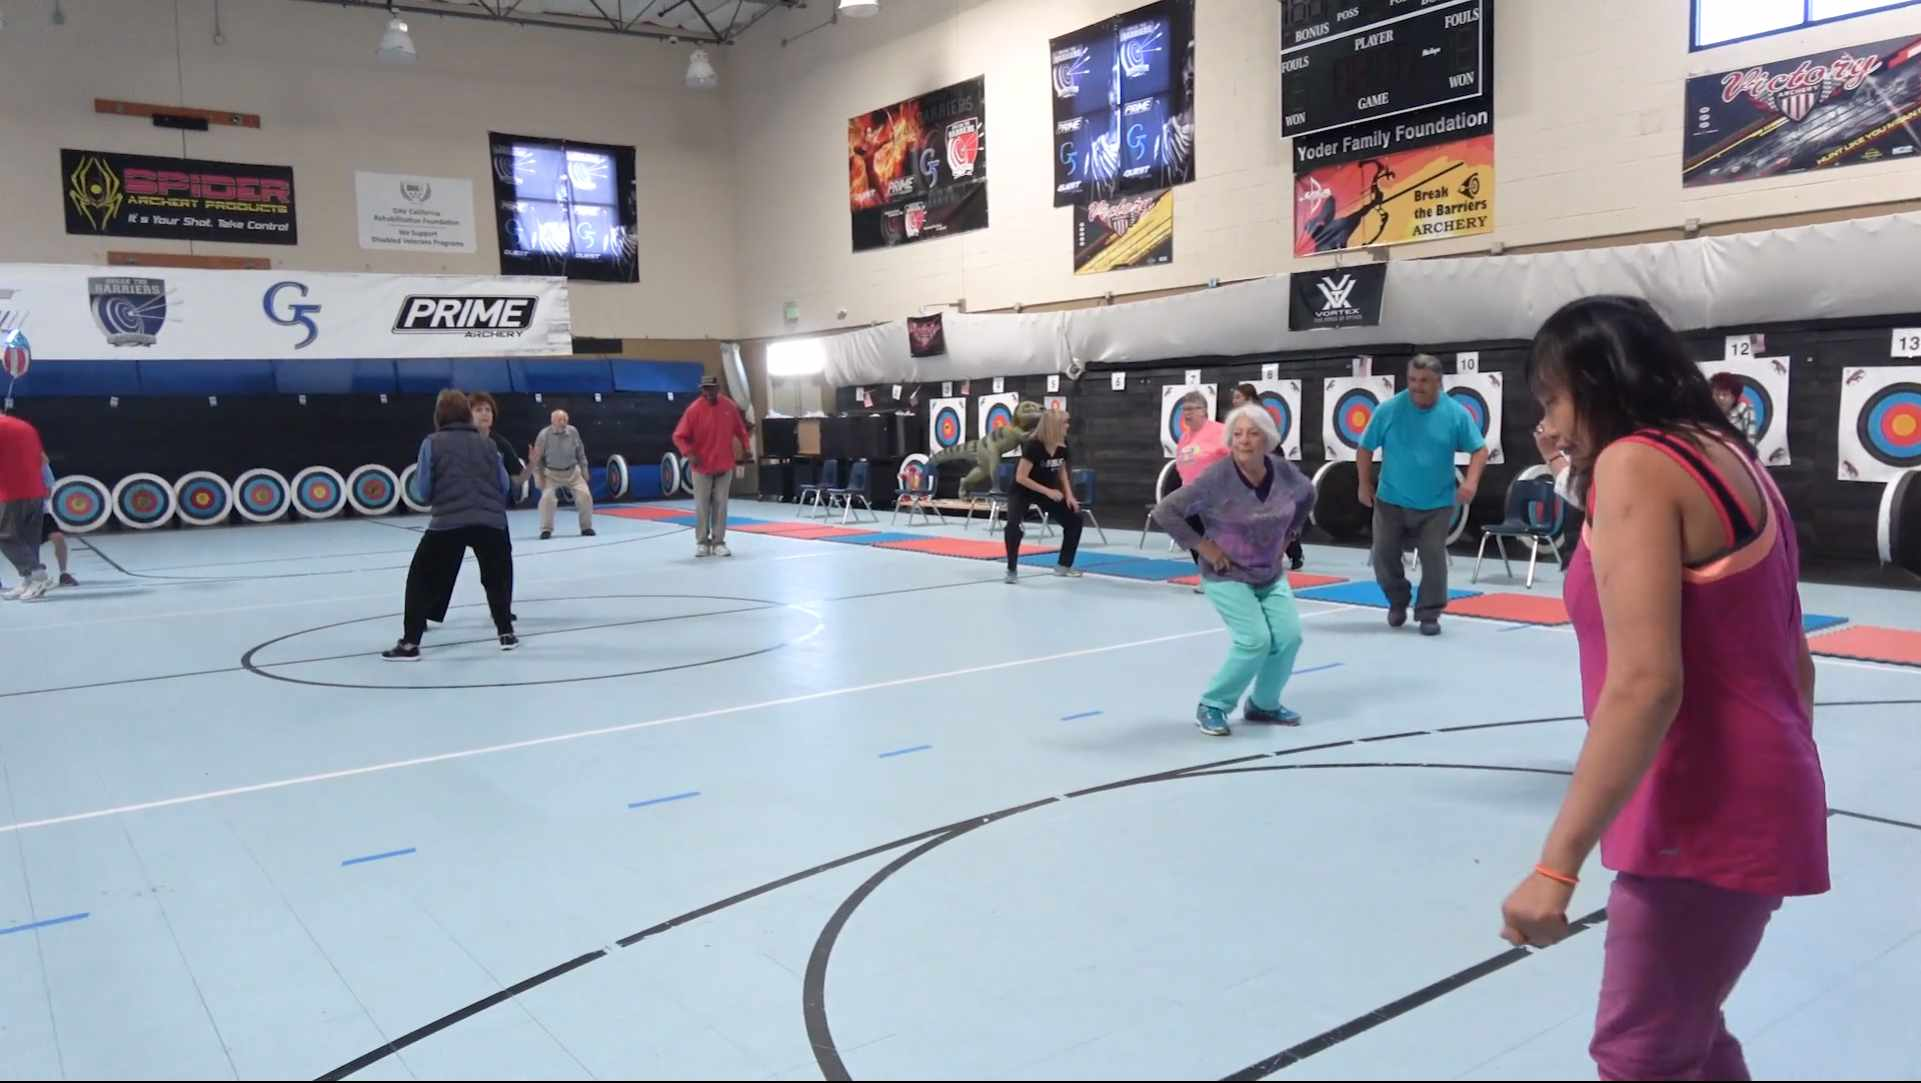 Group of people doing squat exercises across a light blue basketball court